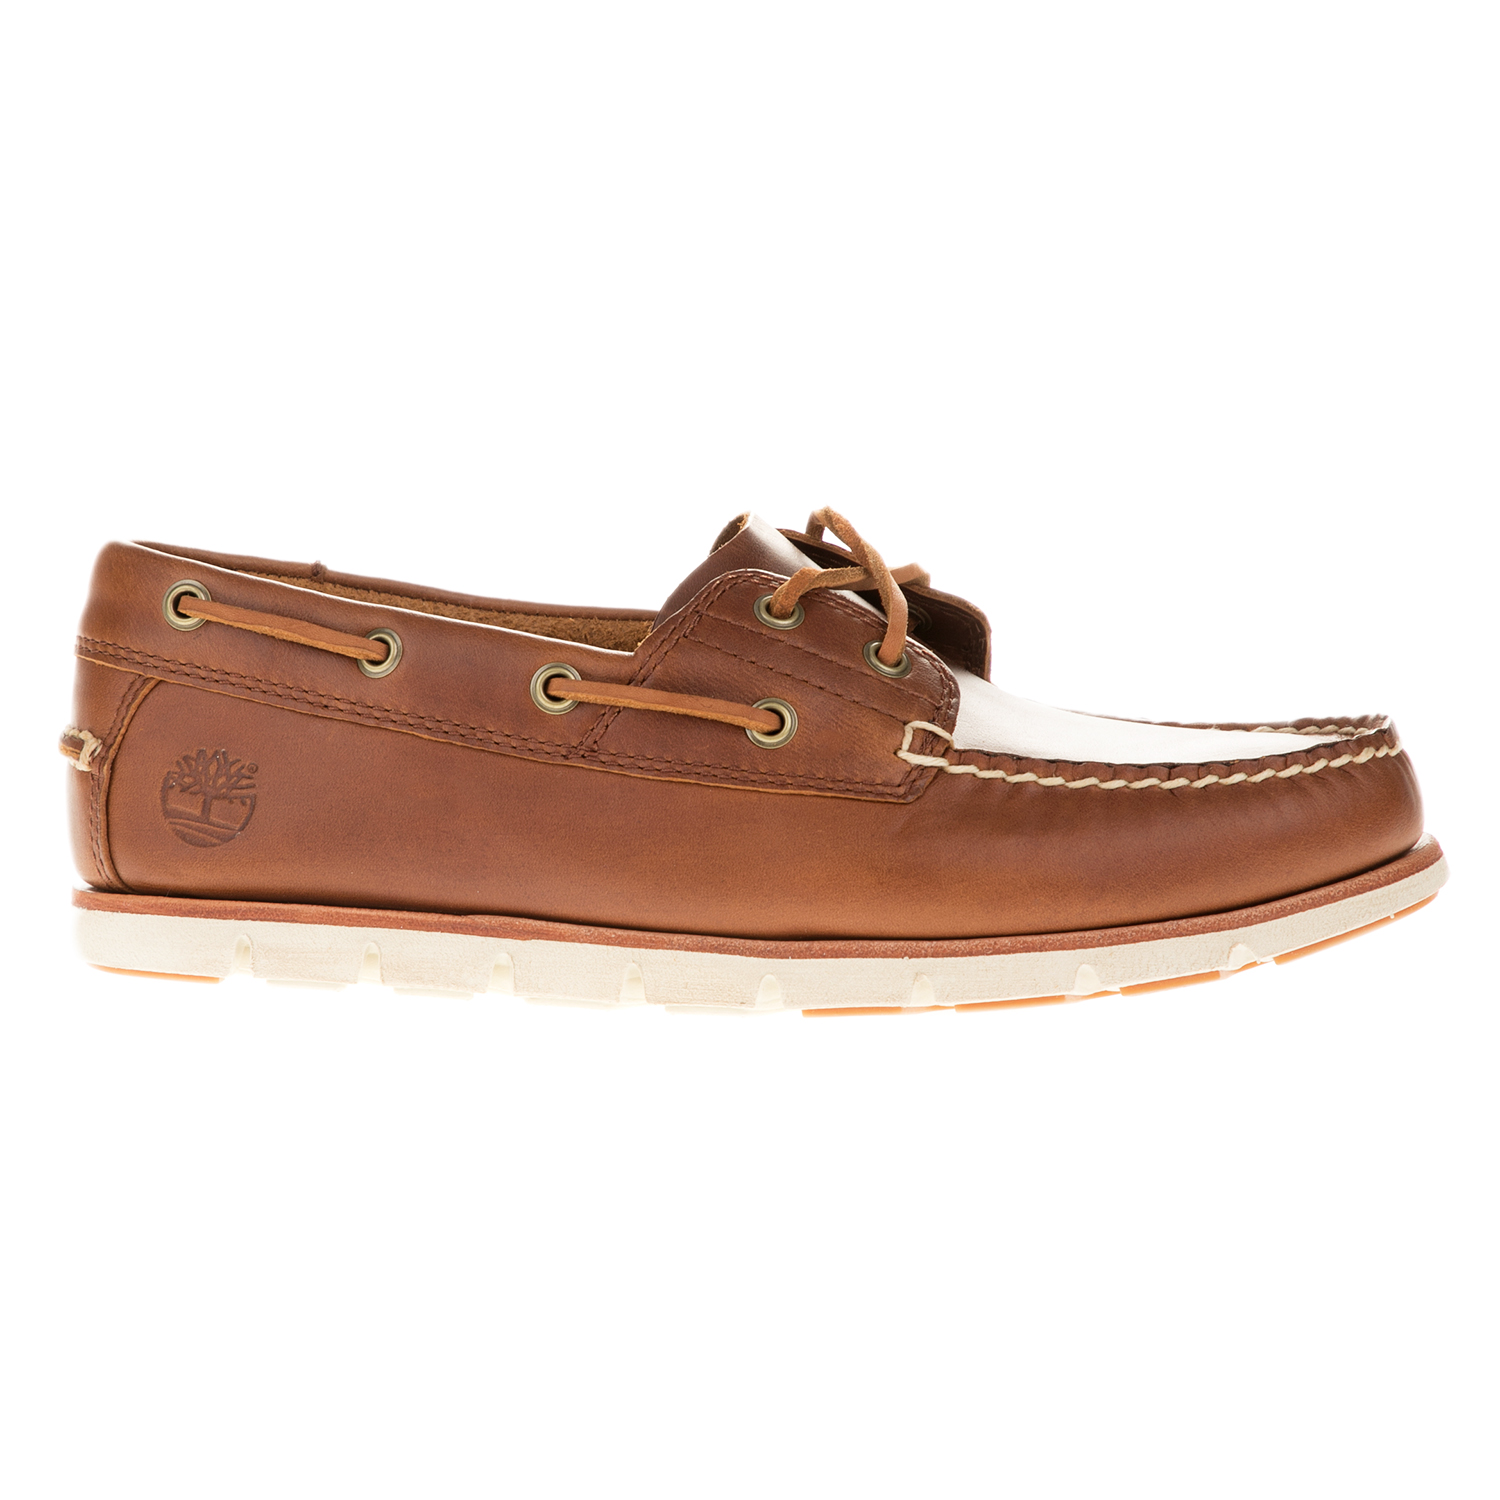 dd55c819790 Loafers, Παπούτσια TIMBERLAND. Ανδρικά δερμάτινα boat shoes σε μπλε  απόχρωση με αντιολισθική σόλα. Διαθέτουν ιδιαίτερα αναπαυτικό πάτο και σόλα.